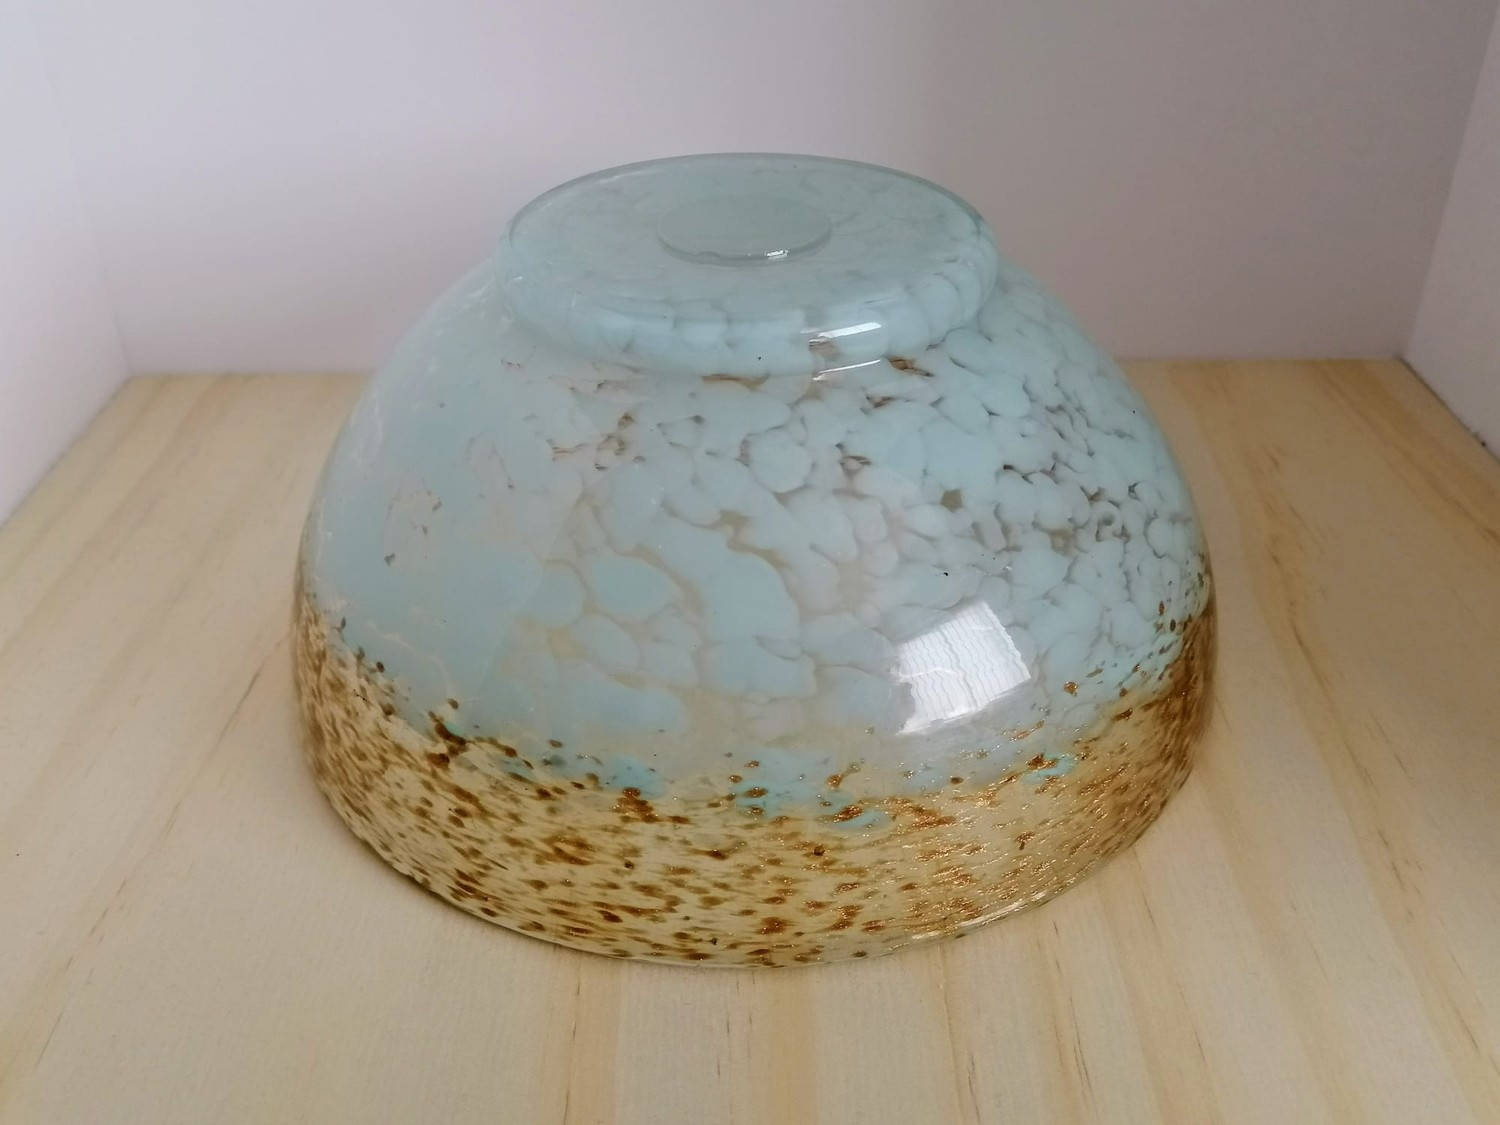 Scottish Monart glass Bowl in wedding Blue design shape MA, with clear and gold fleck adverturine - Image 2 of 2